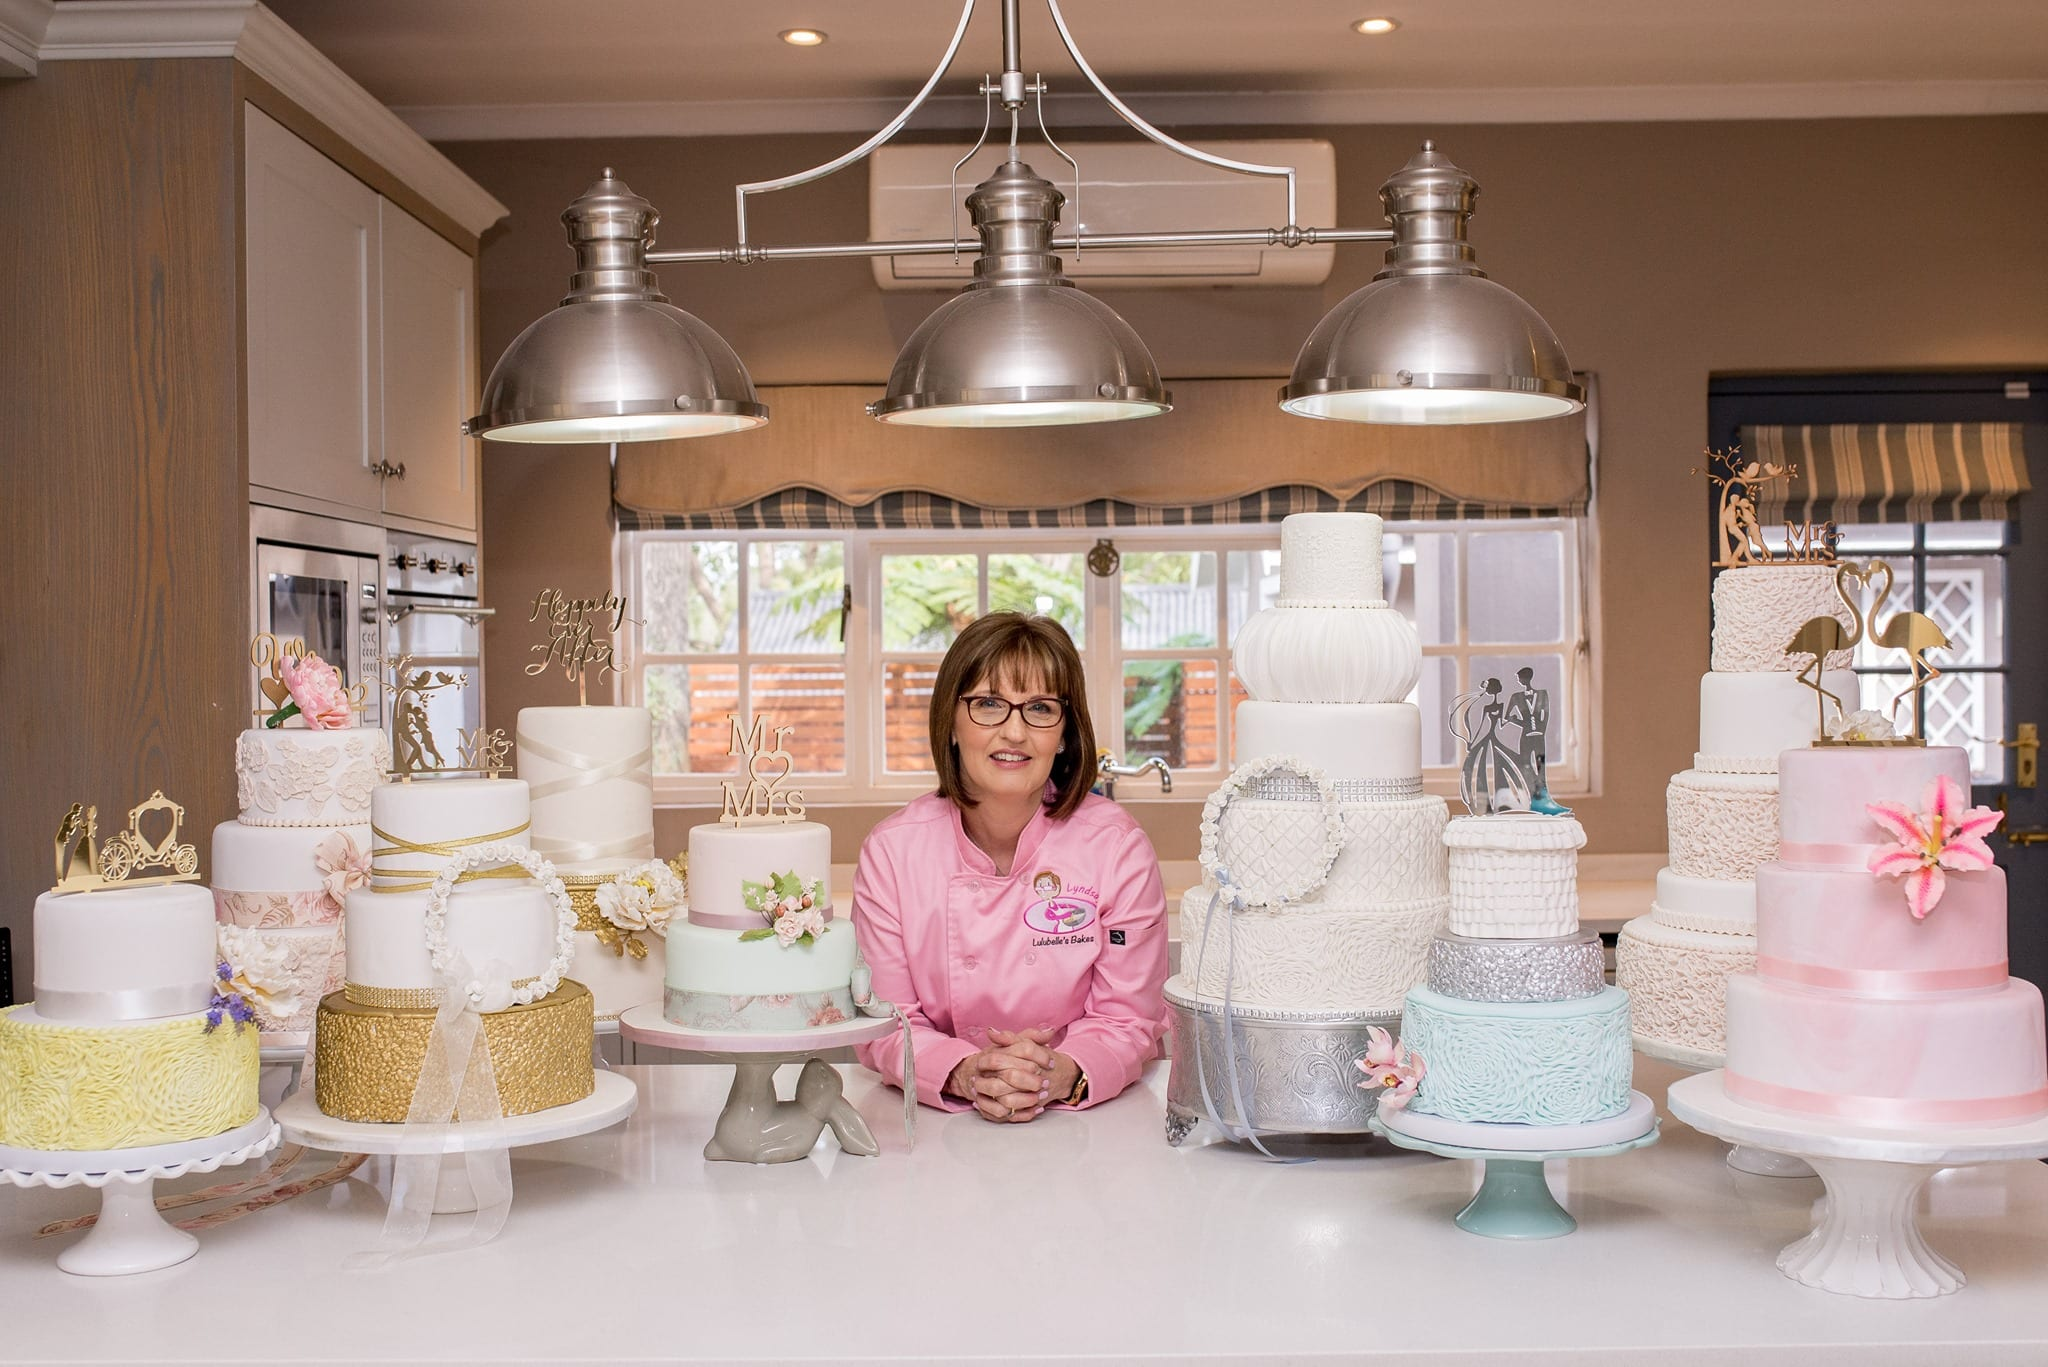 Lyndsay from Lullubelle's Bakes sitting in kitchen surrounded by celebration cakes